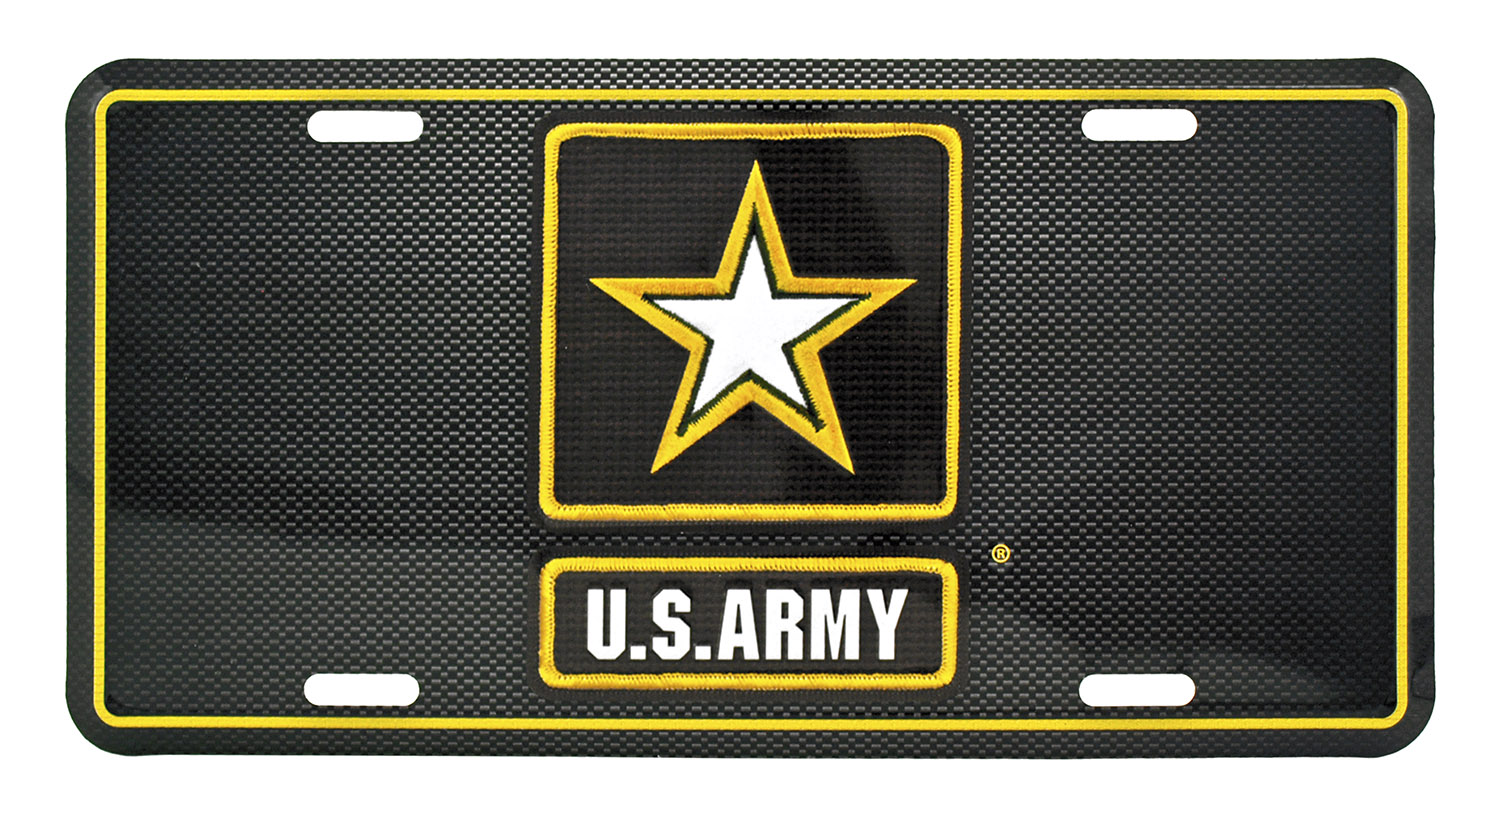 Officially Licensed U.S. Army License Plate